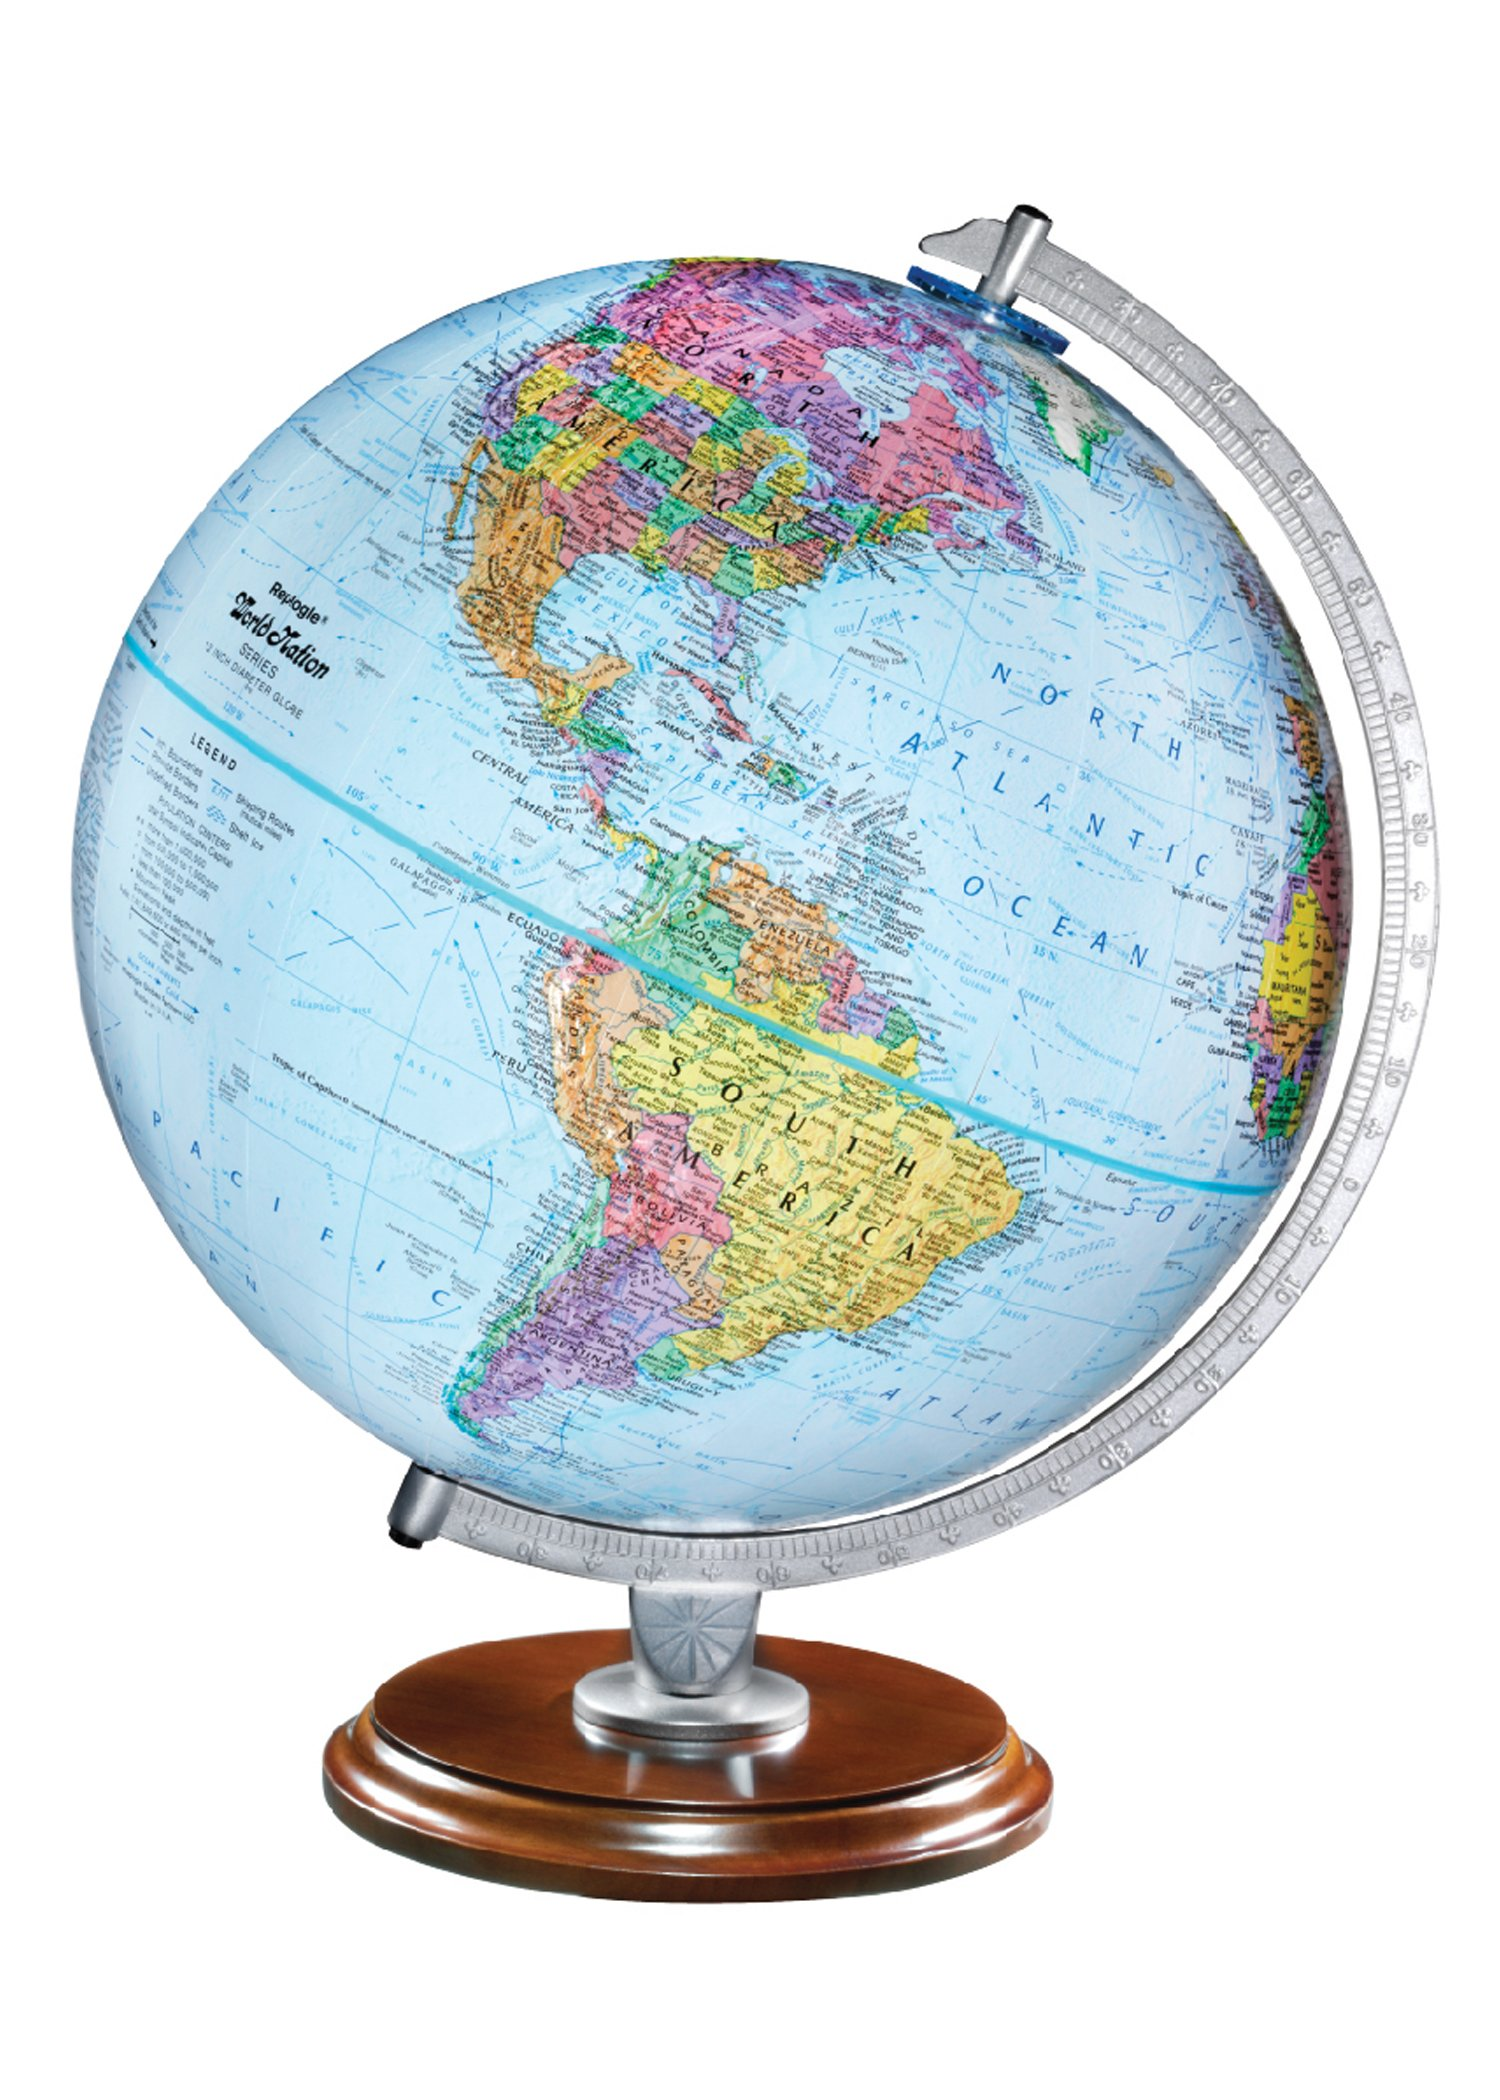 Replogle Standard - Educational Desktop World Globe for Kids and Teachers, Antique Walnut Wood Stand, Over 4,000 Place Names, Designed for Classroom Learning (12''/30 cm Diameter) by Replogle